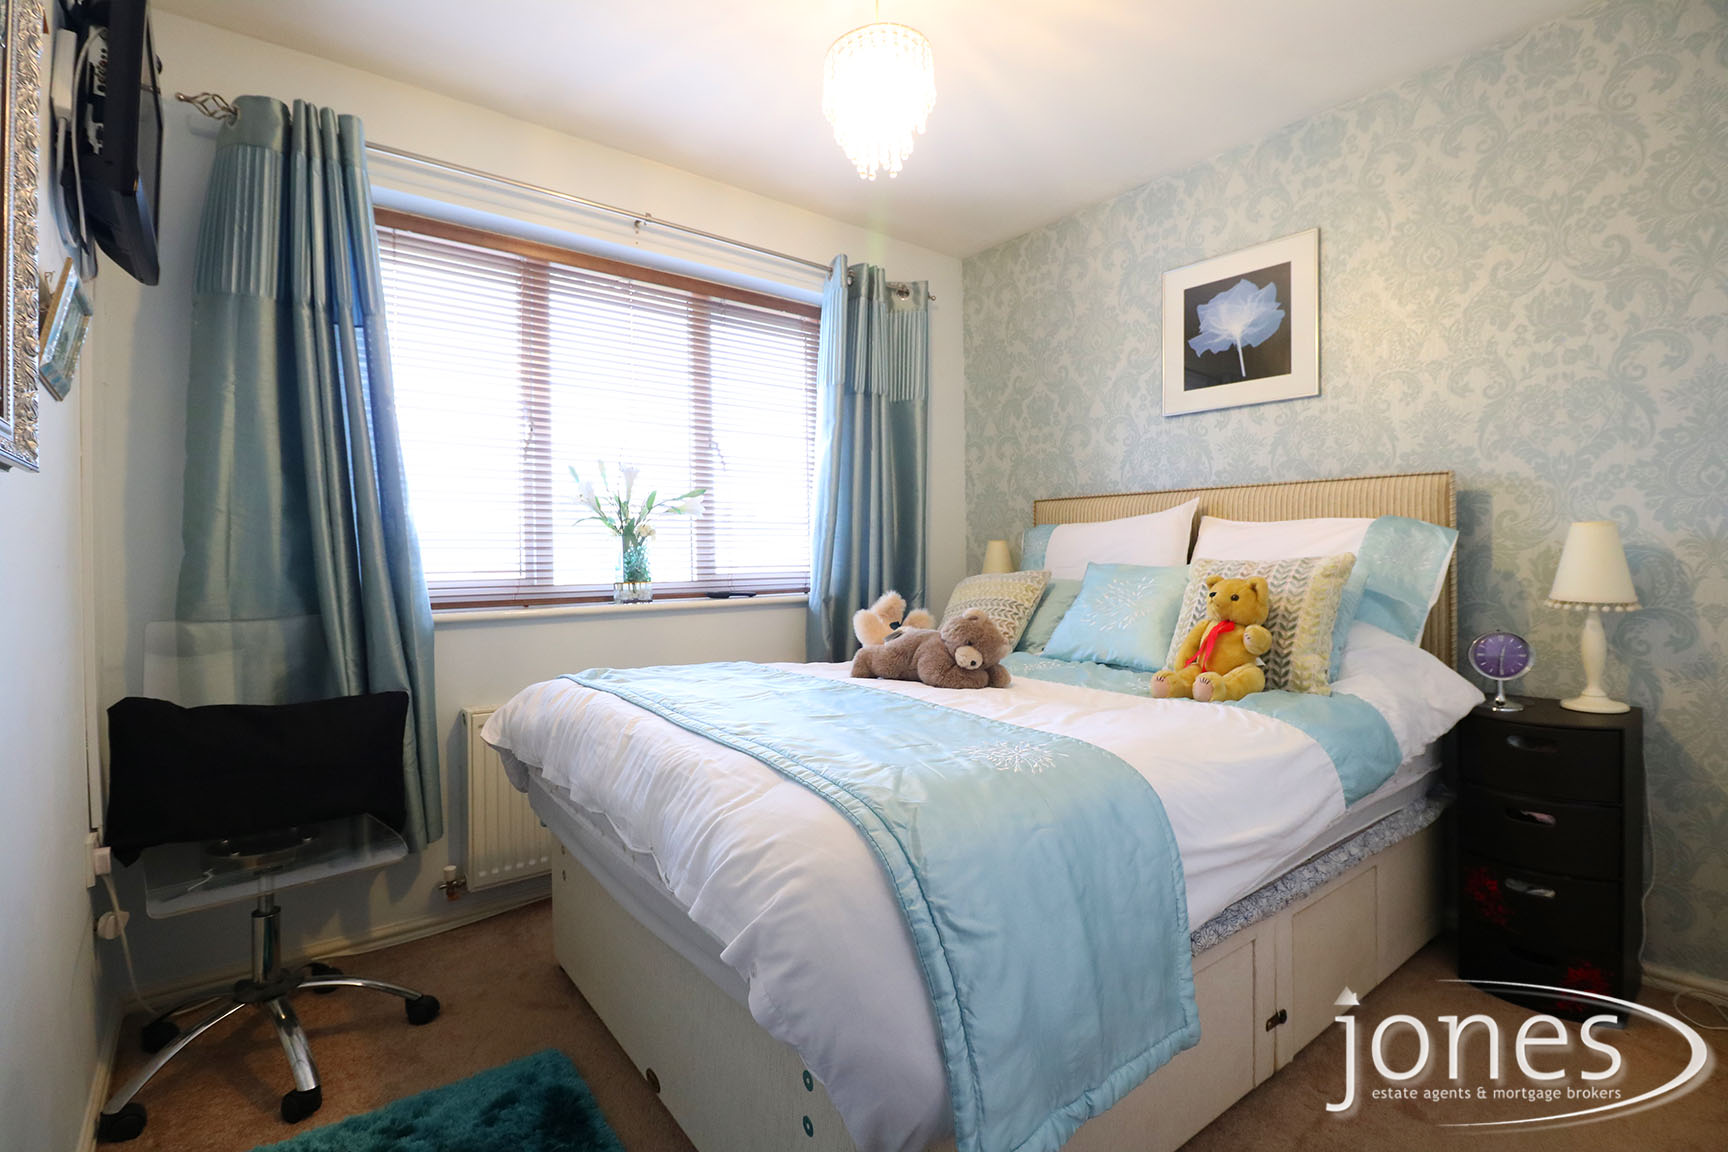 Home for Sale Let - Photo 08 West End Way, Stockton on Tees, TS18 3UA